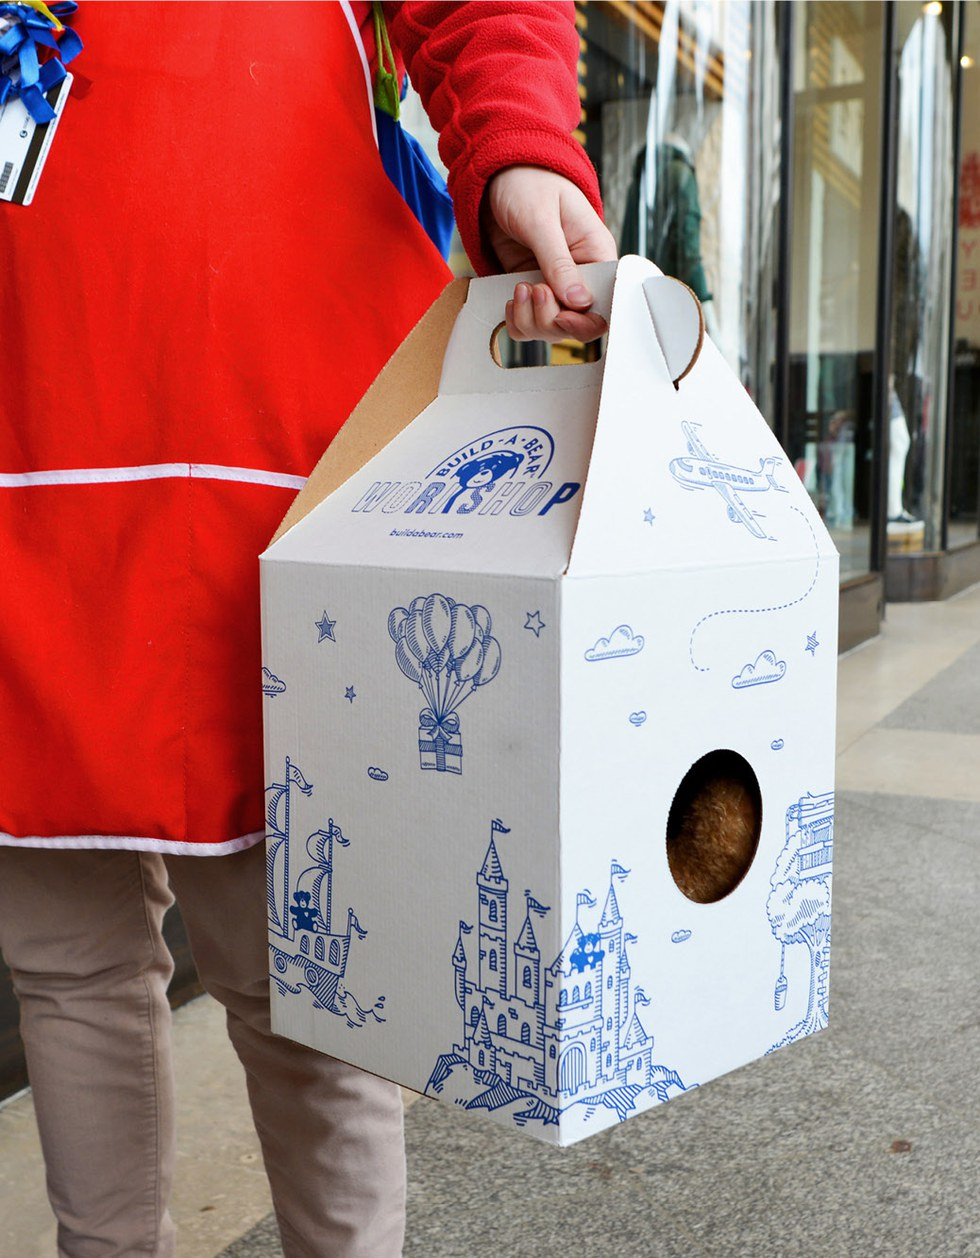 Build A Bear On A Budget 8 Steps To Save From A Former Employee